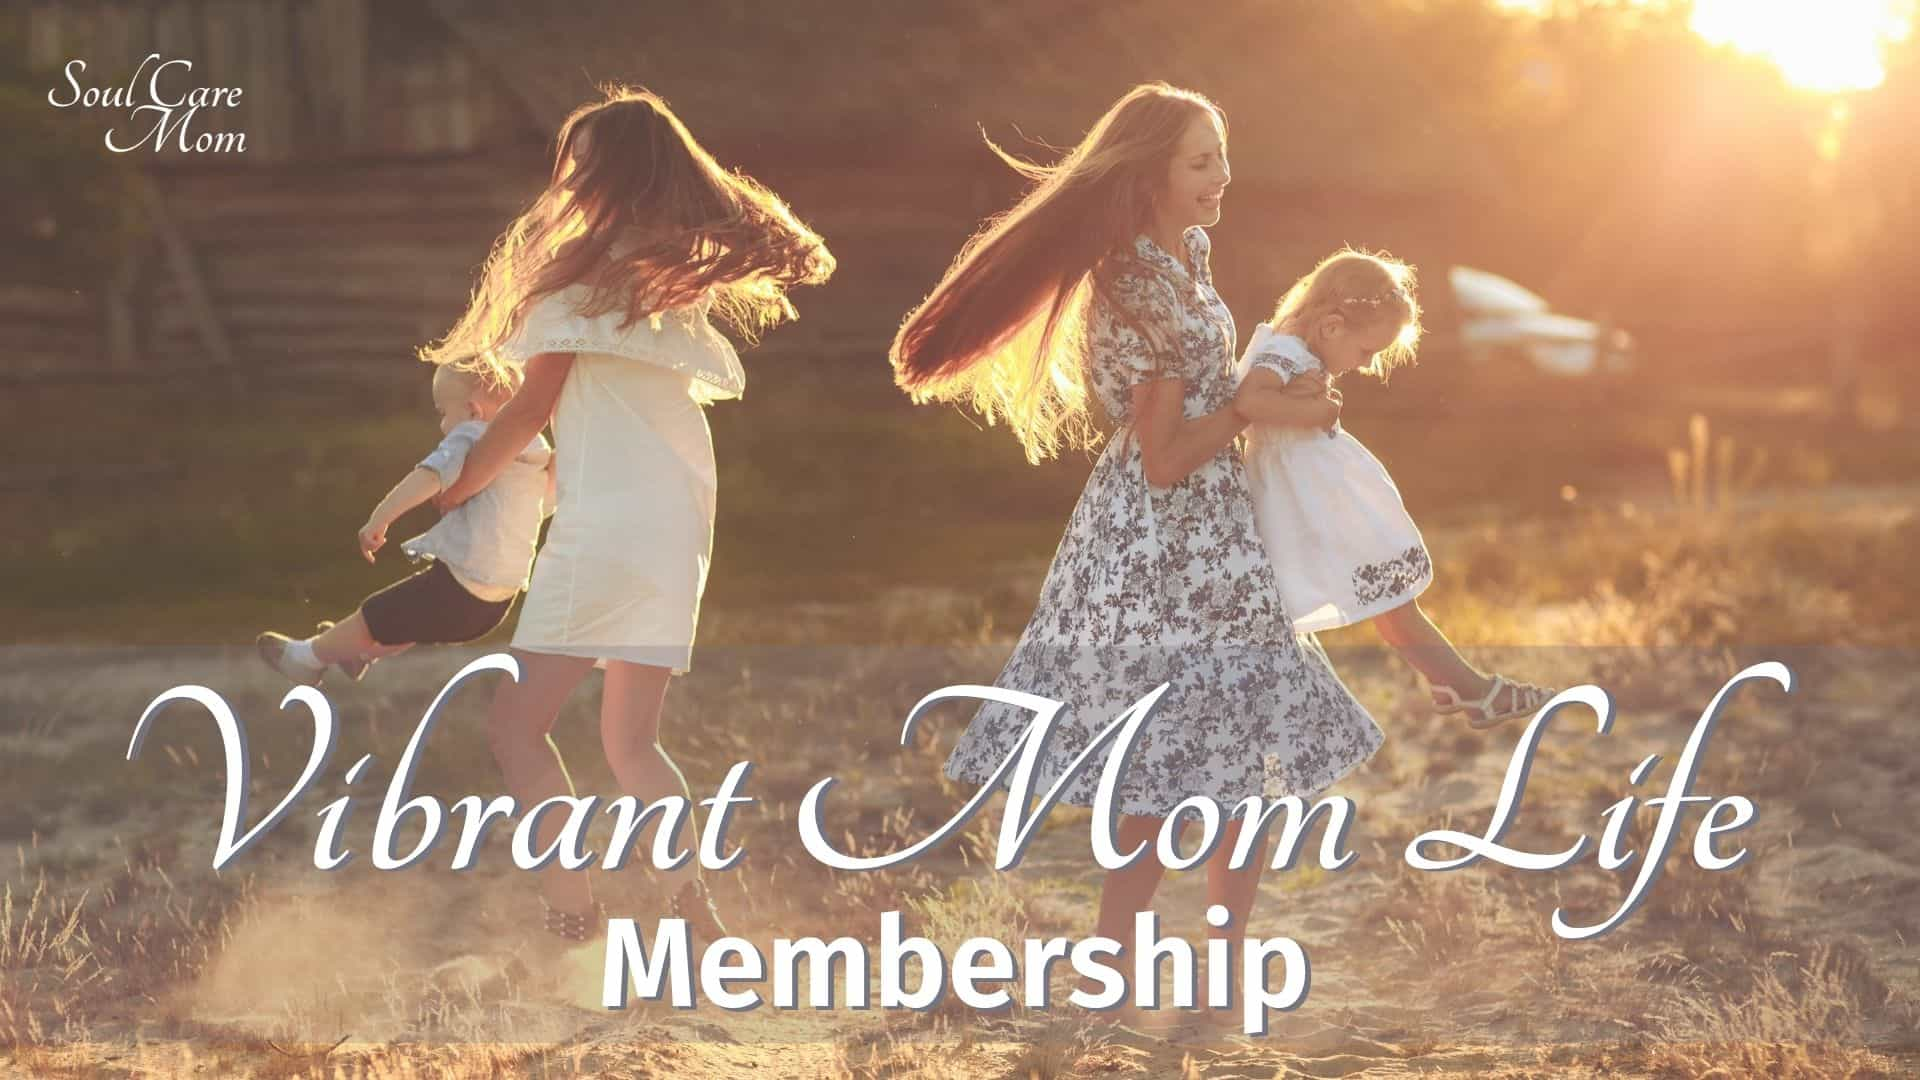 Vibrant Mom Life Membership - Soul Care Mom 1920x1080